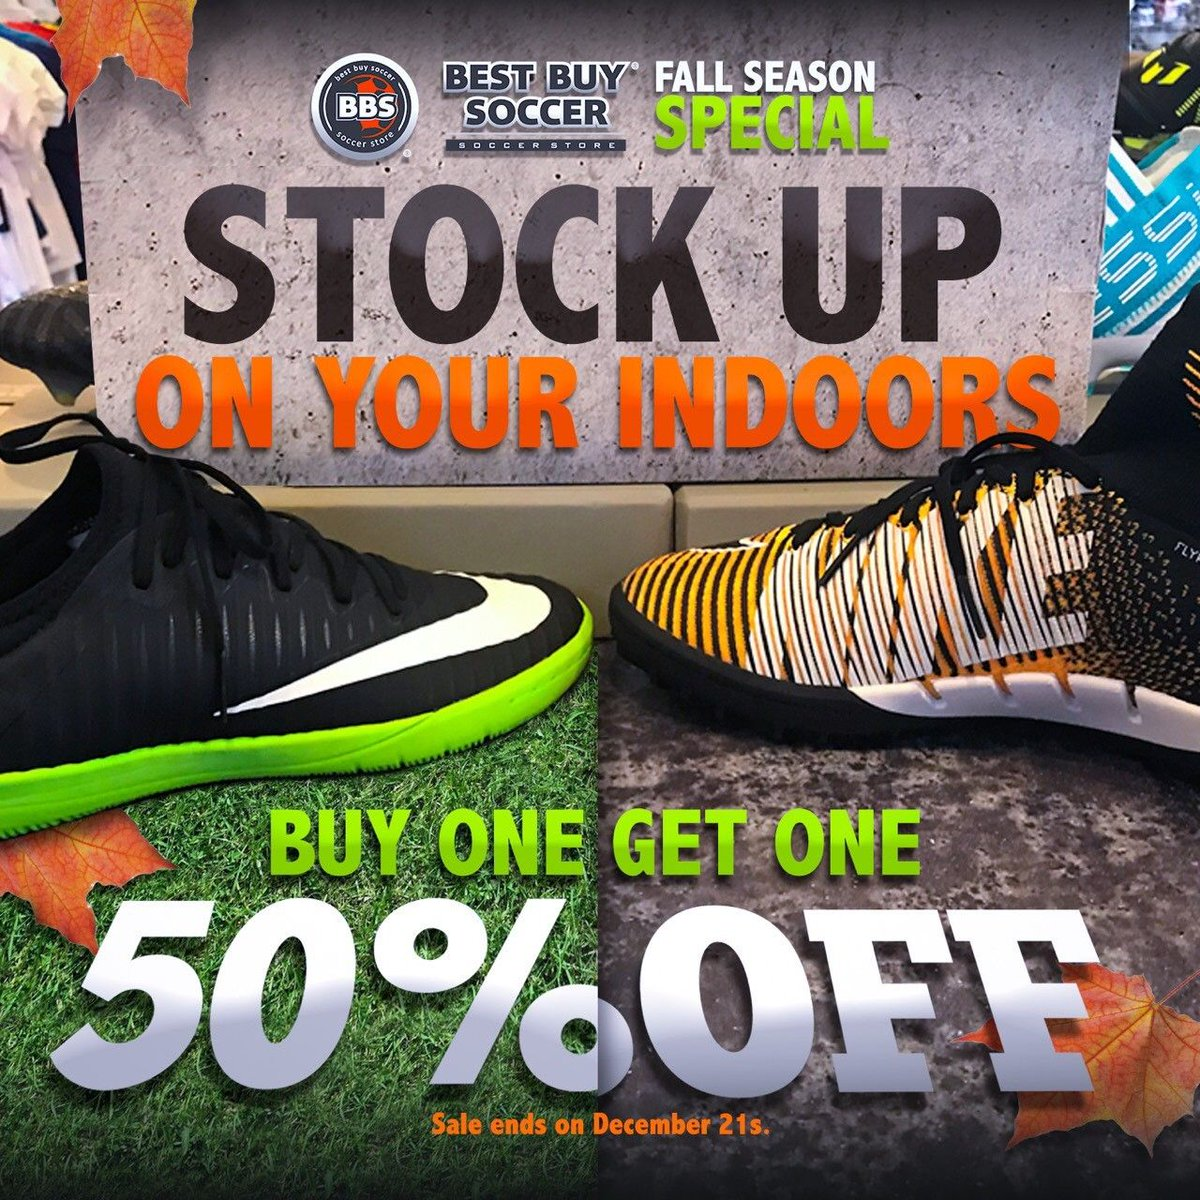 We are having an IN-STORE Promotion. Buy any indoor shoe and get the Second one 50 % Off. Only @ our Pineville Location. https://t.co/he7reMcHaP